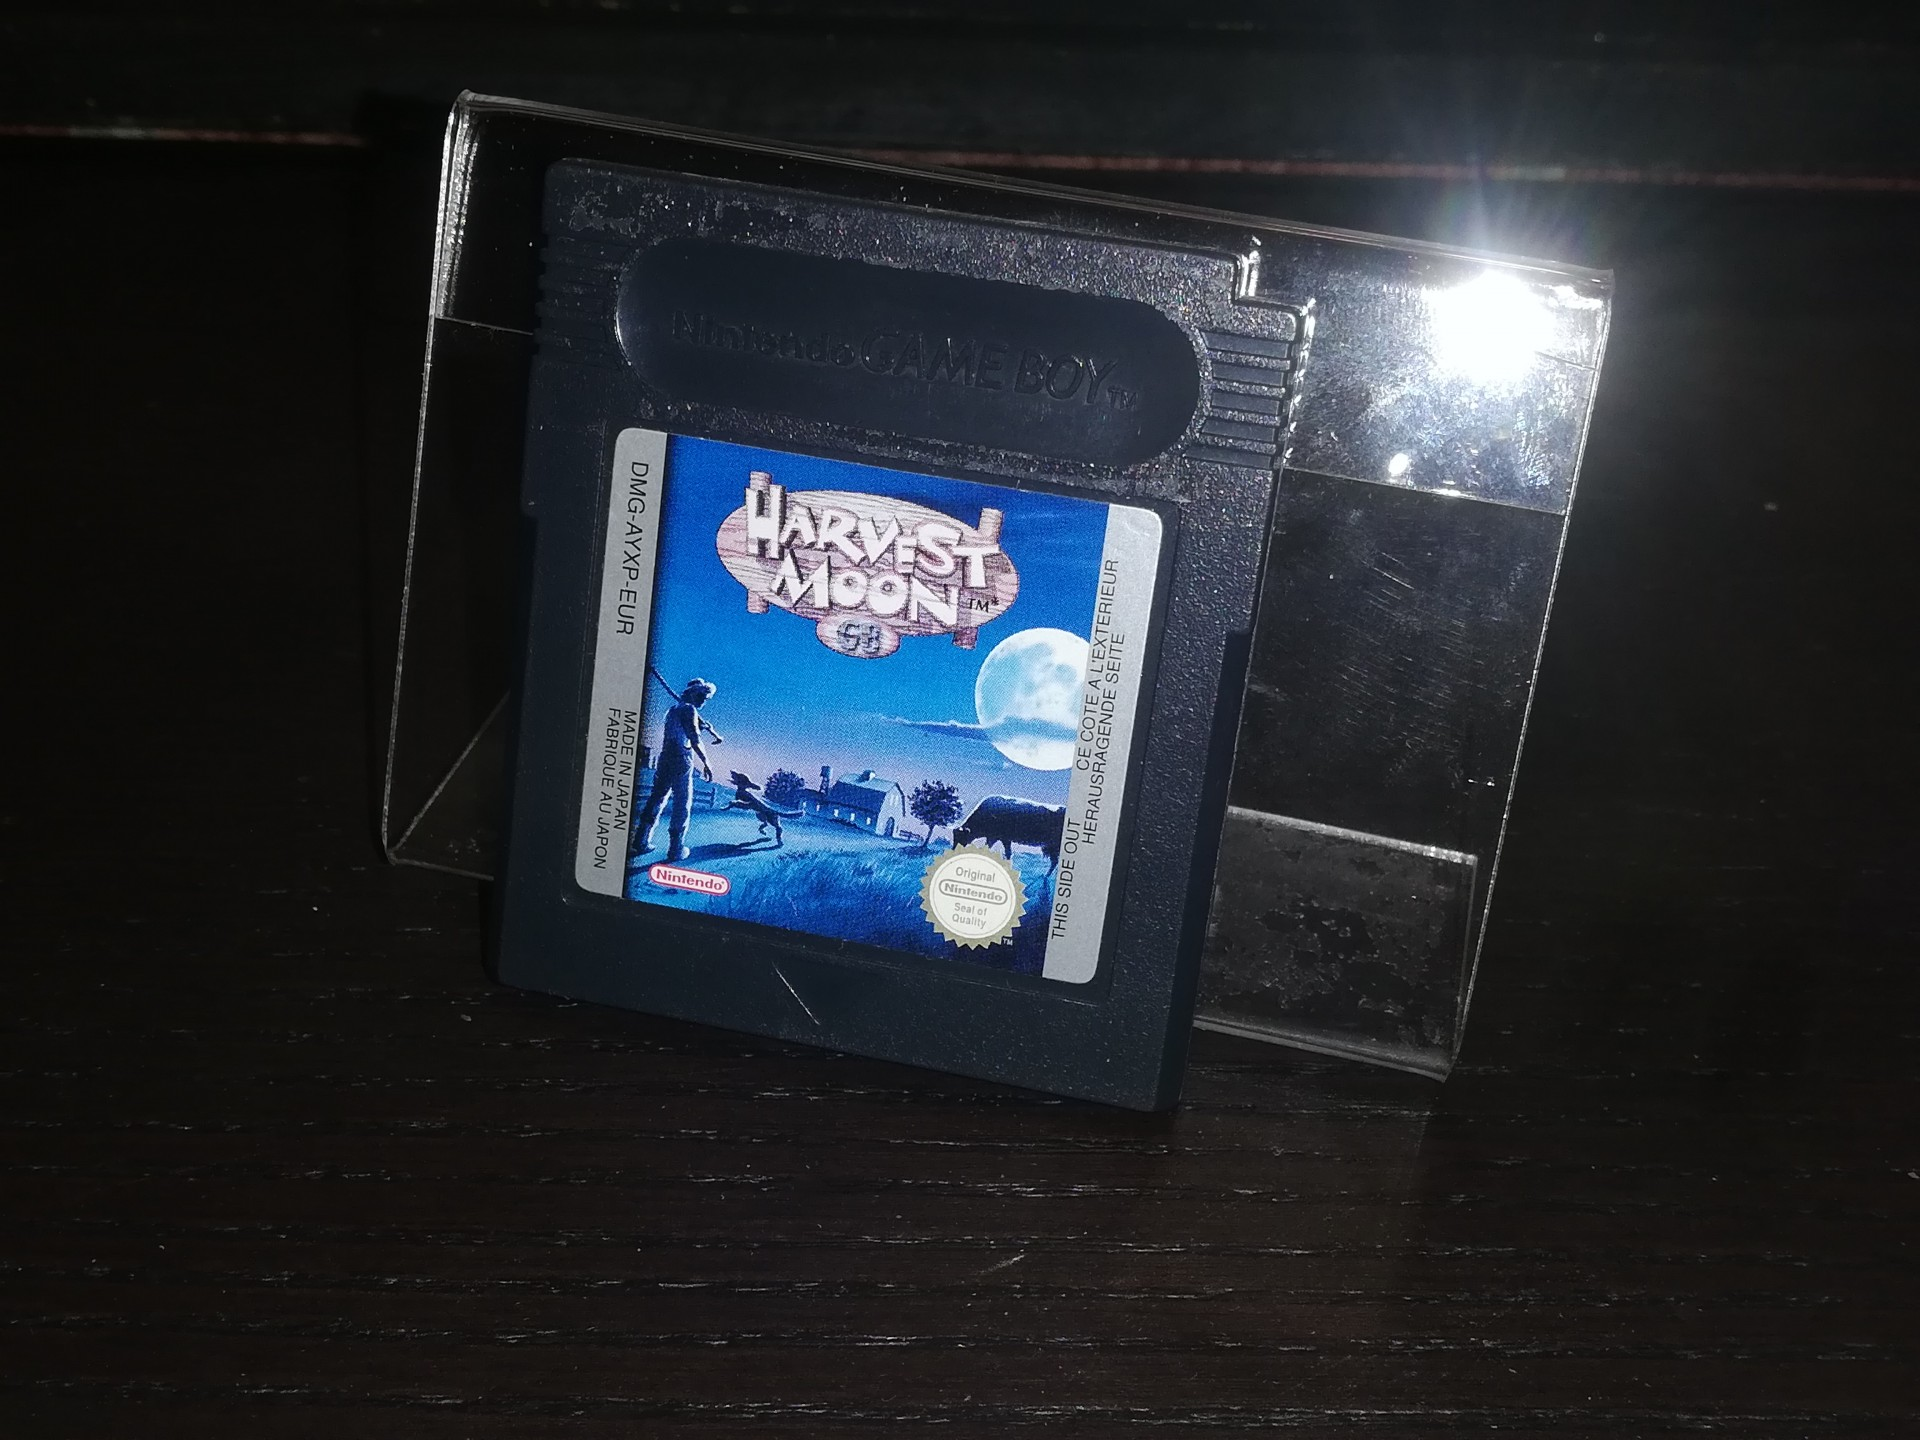 Harvest Moon GB [Cartucho] - GBC